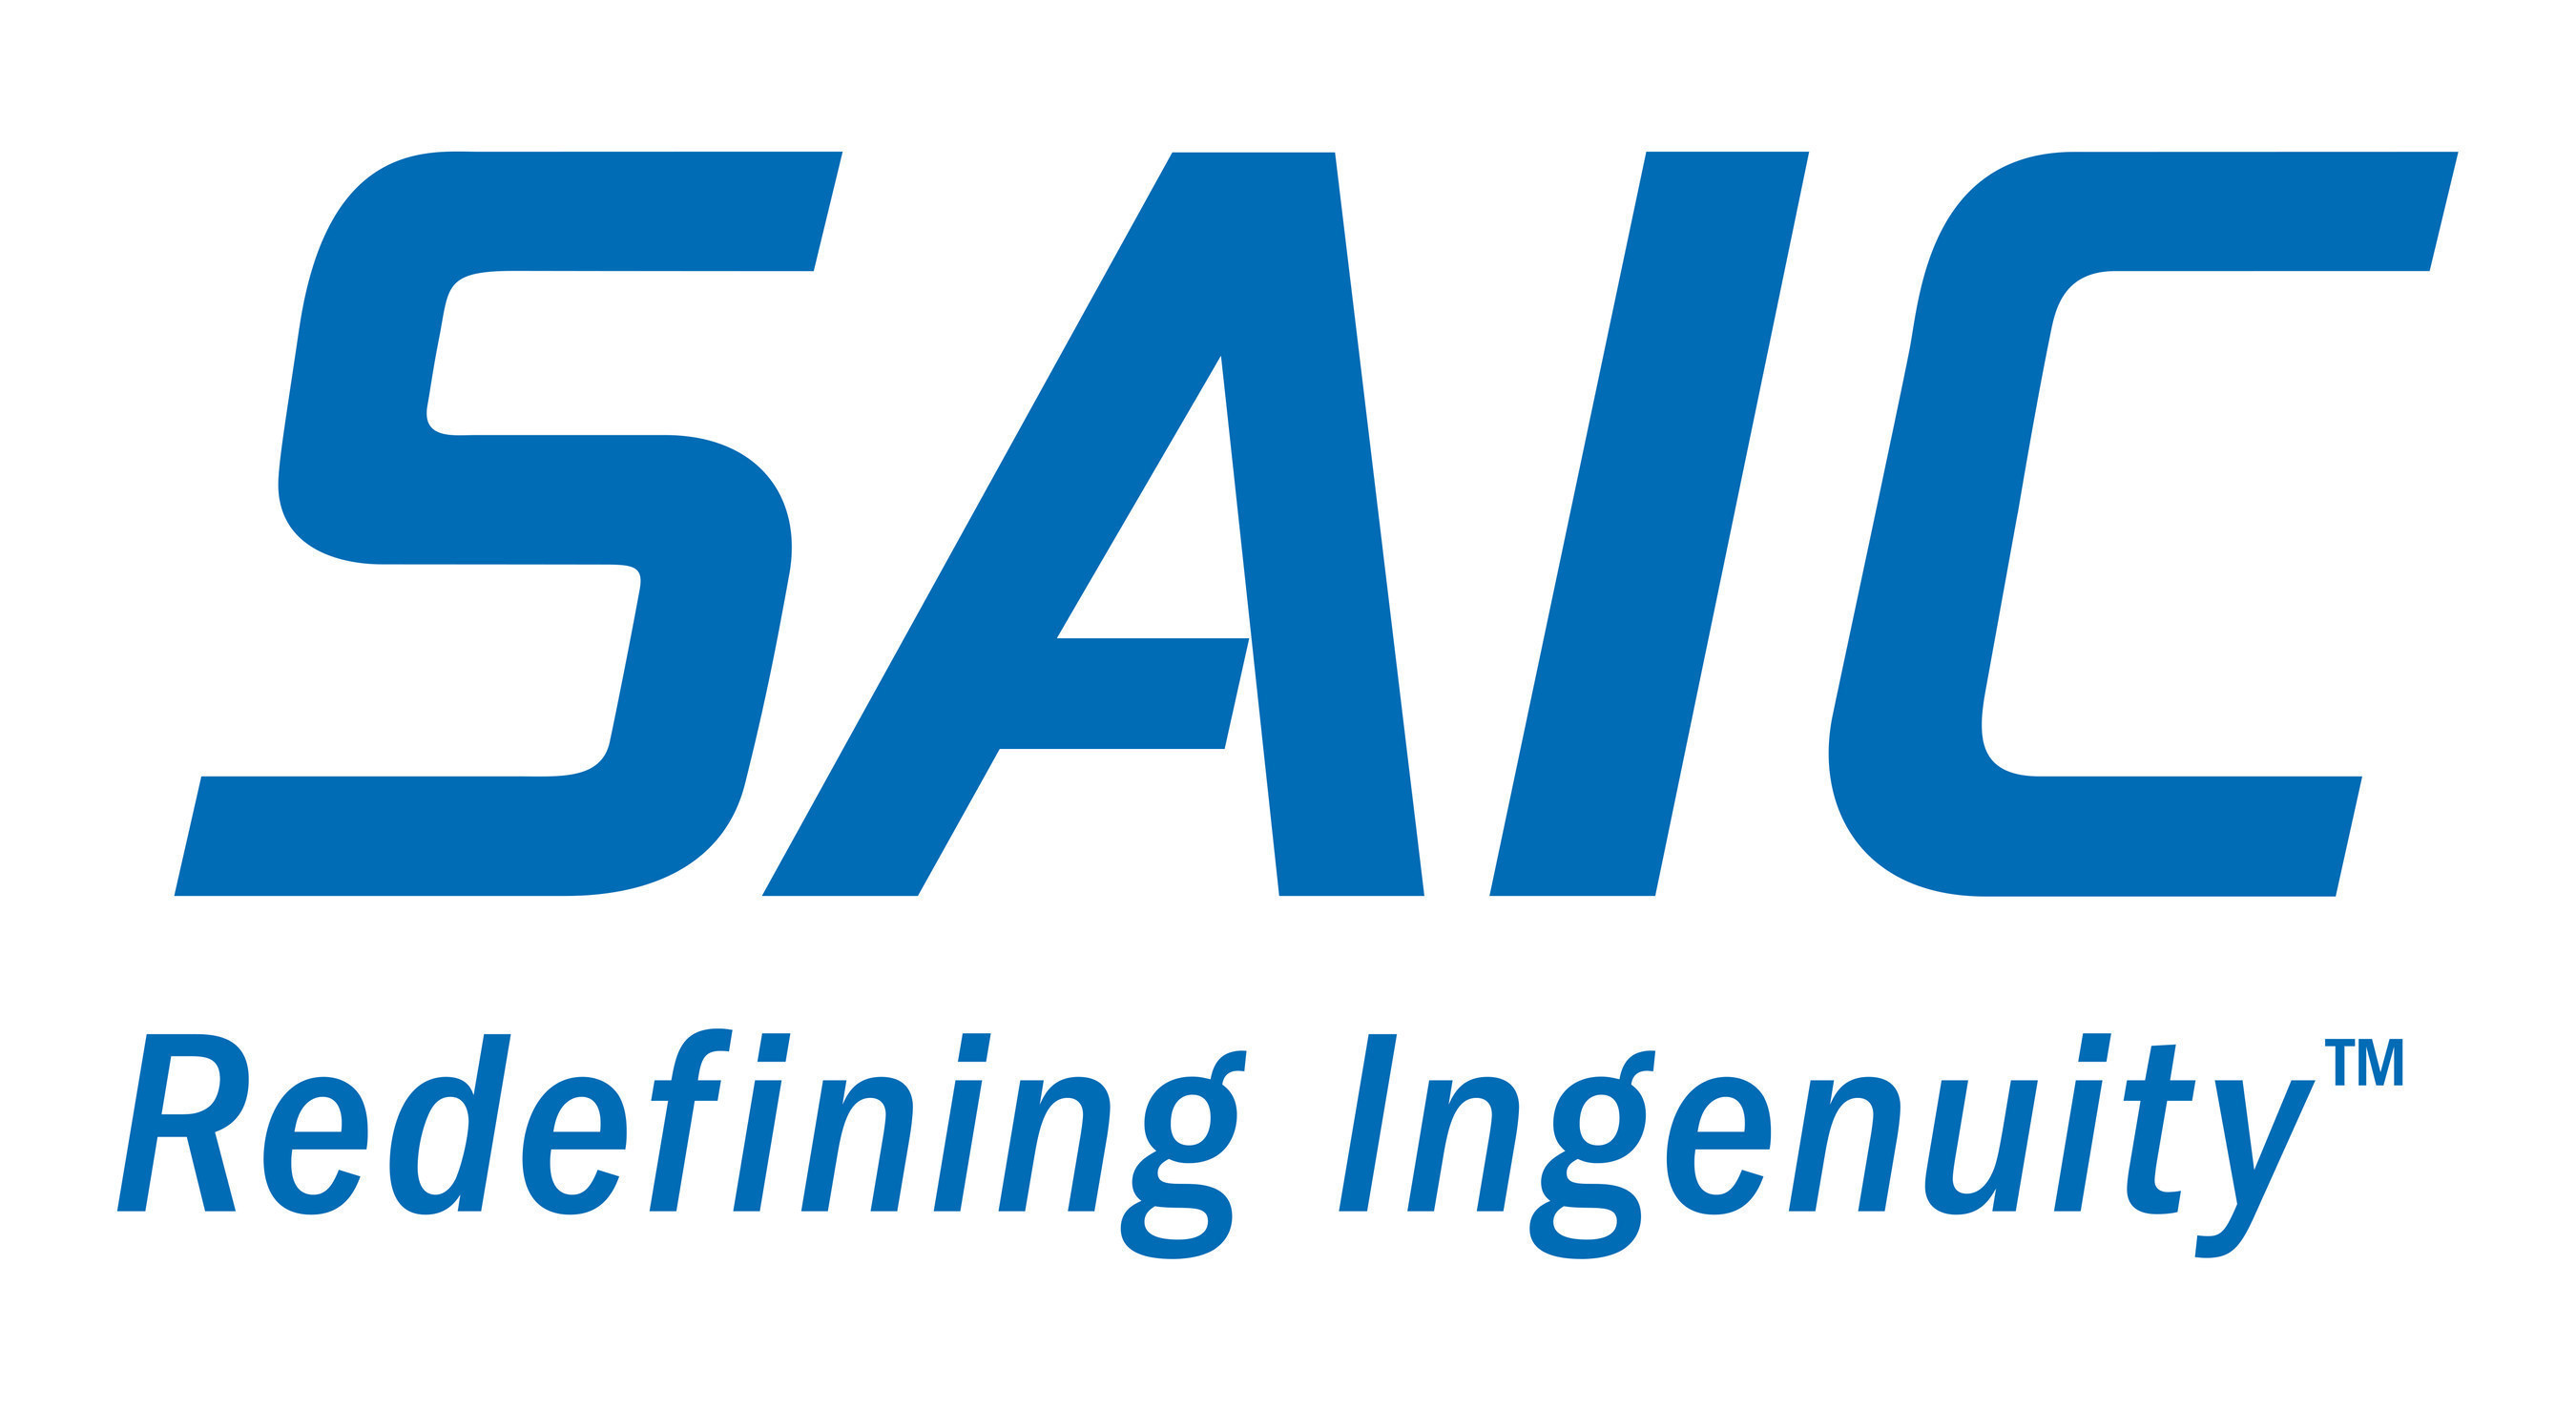 At SAIC, we empower our people to apply their integrity, mission understanding, and creativity to change the ...